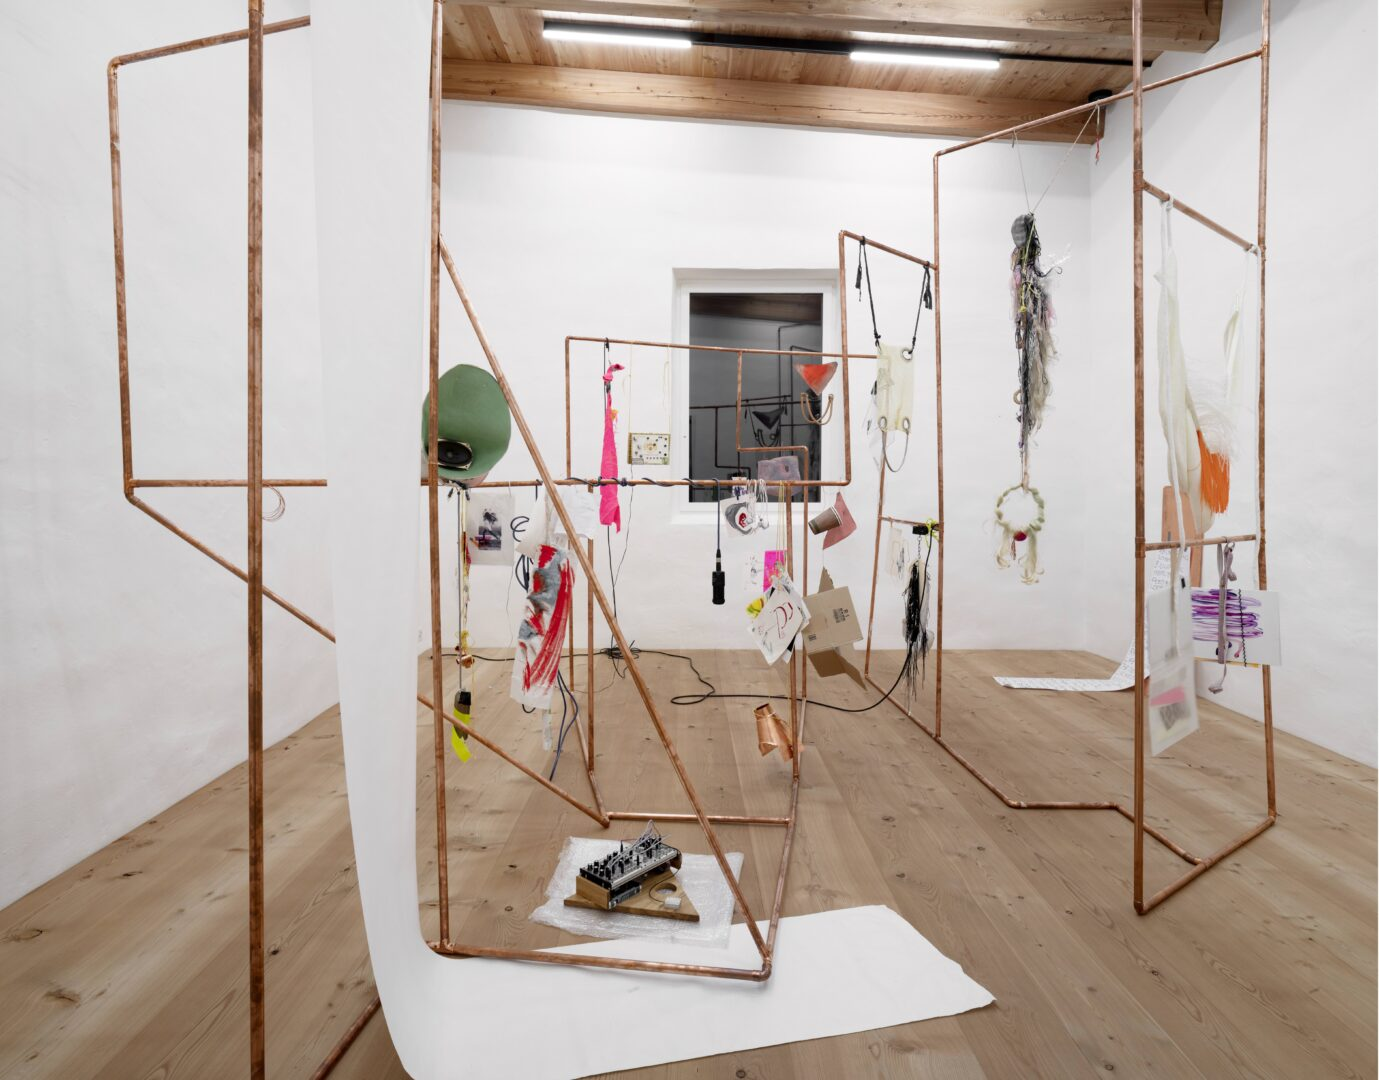 Exhibition View Groupshow «Up to and Including Limits: After Carolee Schneemann; view on Chicks on Speed, Noise Bodies, 2019» at Muzeum Susch, Susch, 2019-2020 / Photo: Maja Wirkus / Courtesy: the artist and Muzeum Susch